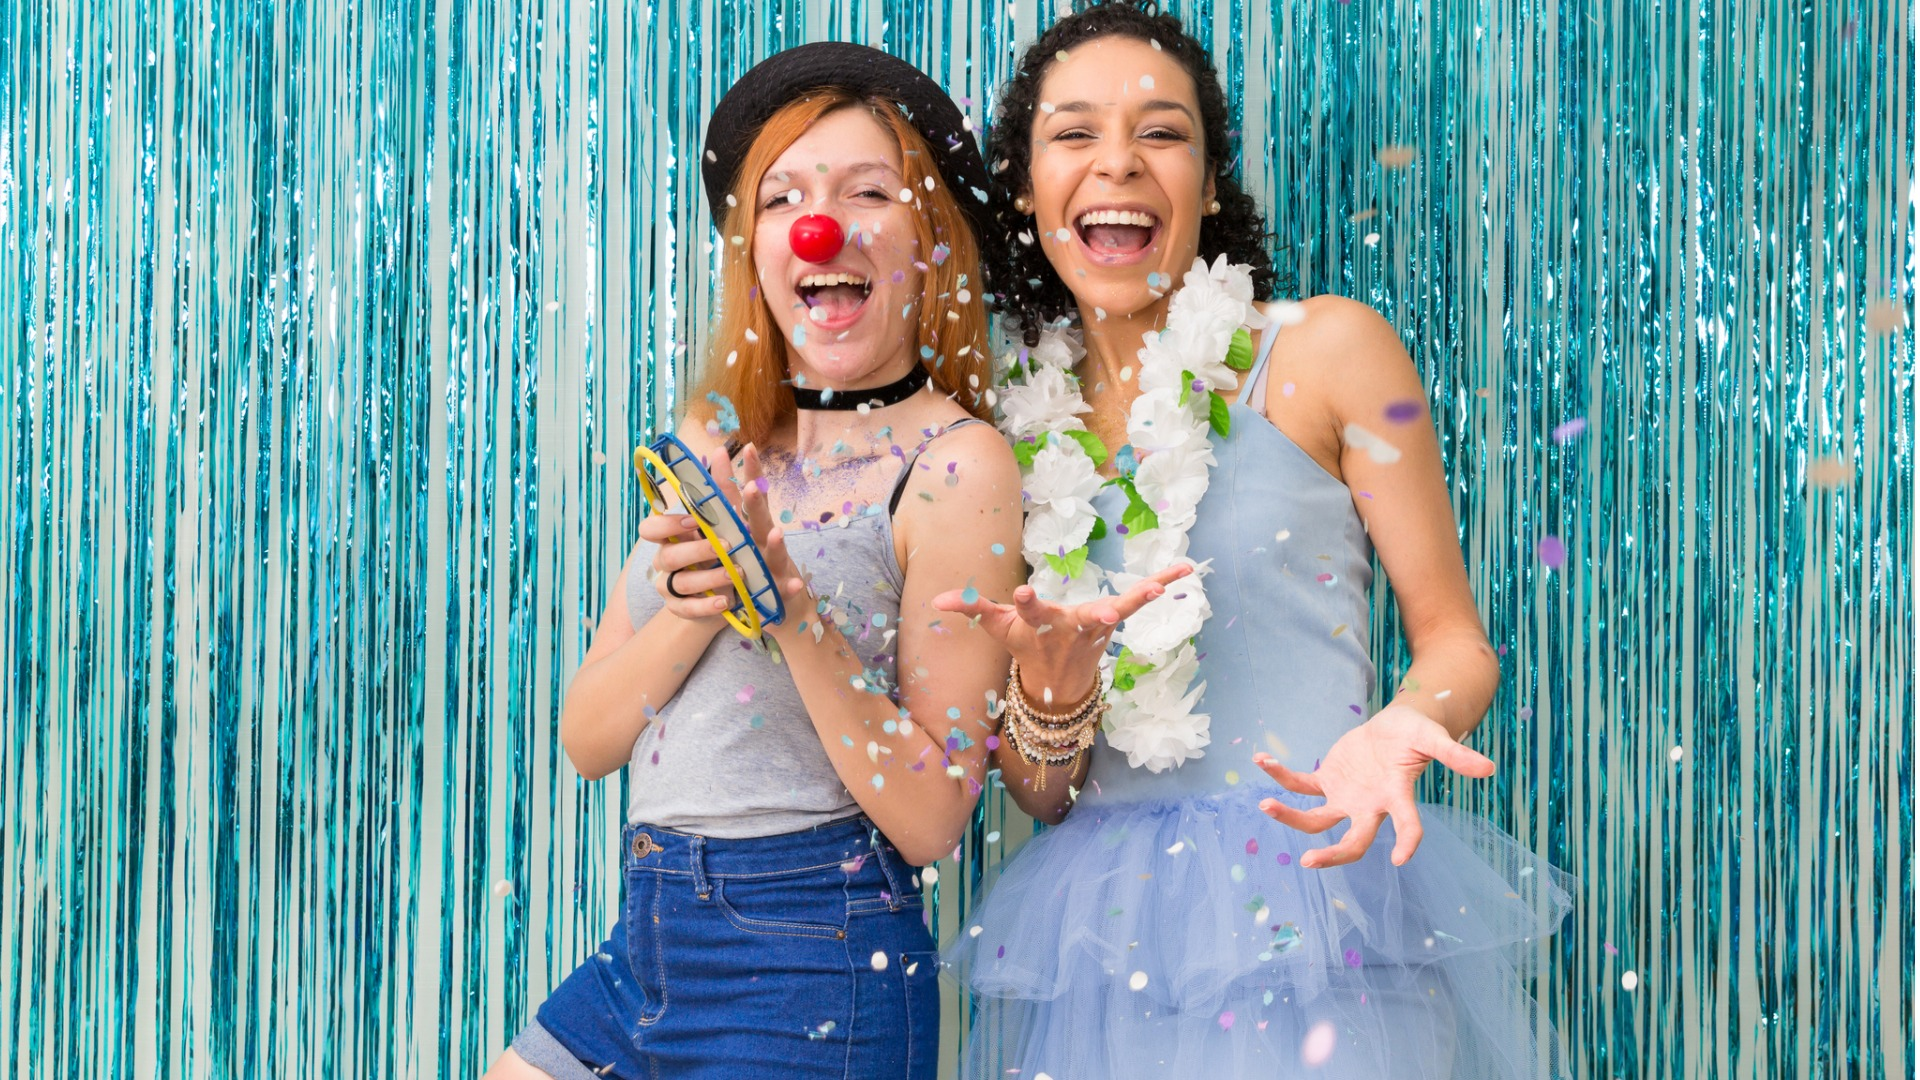 two-friends-are-celebrating-carnaval-blue-color-predominant-confettin-picture-id901980716